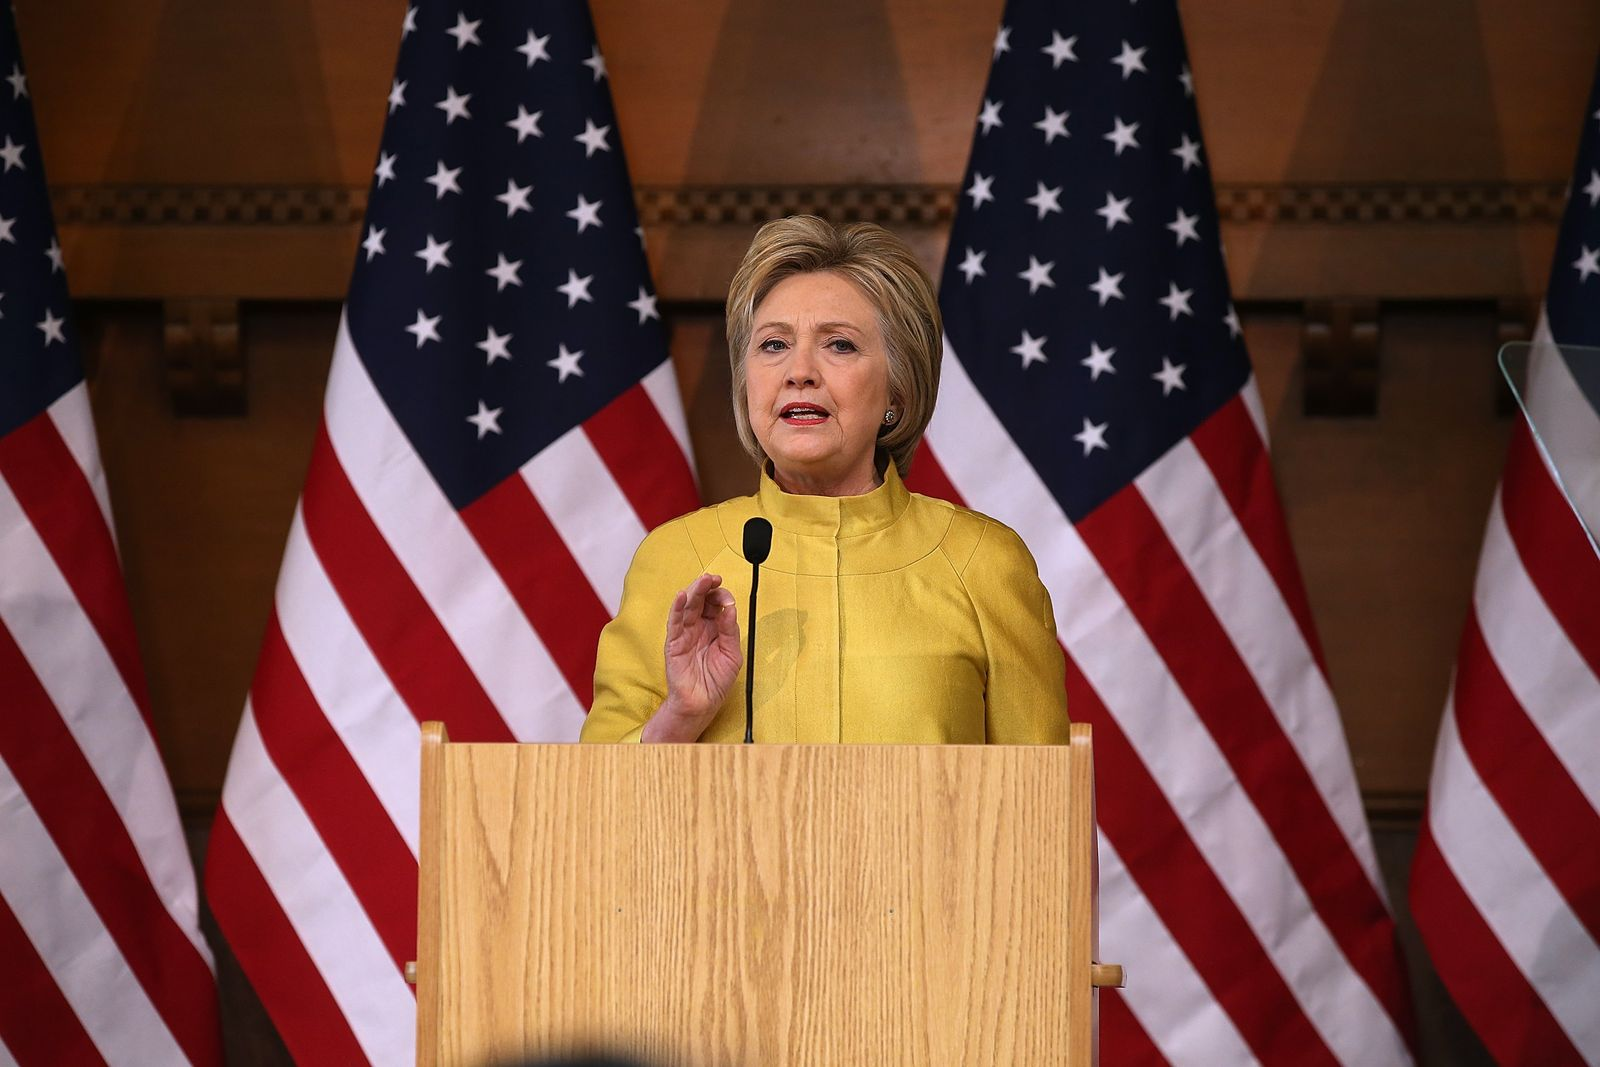 US-HILLARY-CLINTON-DELIVERS-COUNTERTERRORISM-SPEECH-AT-STANFORD-